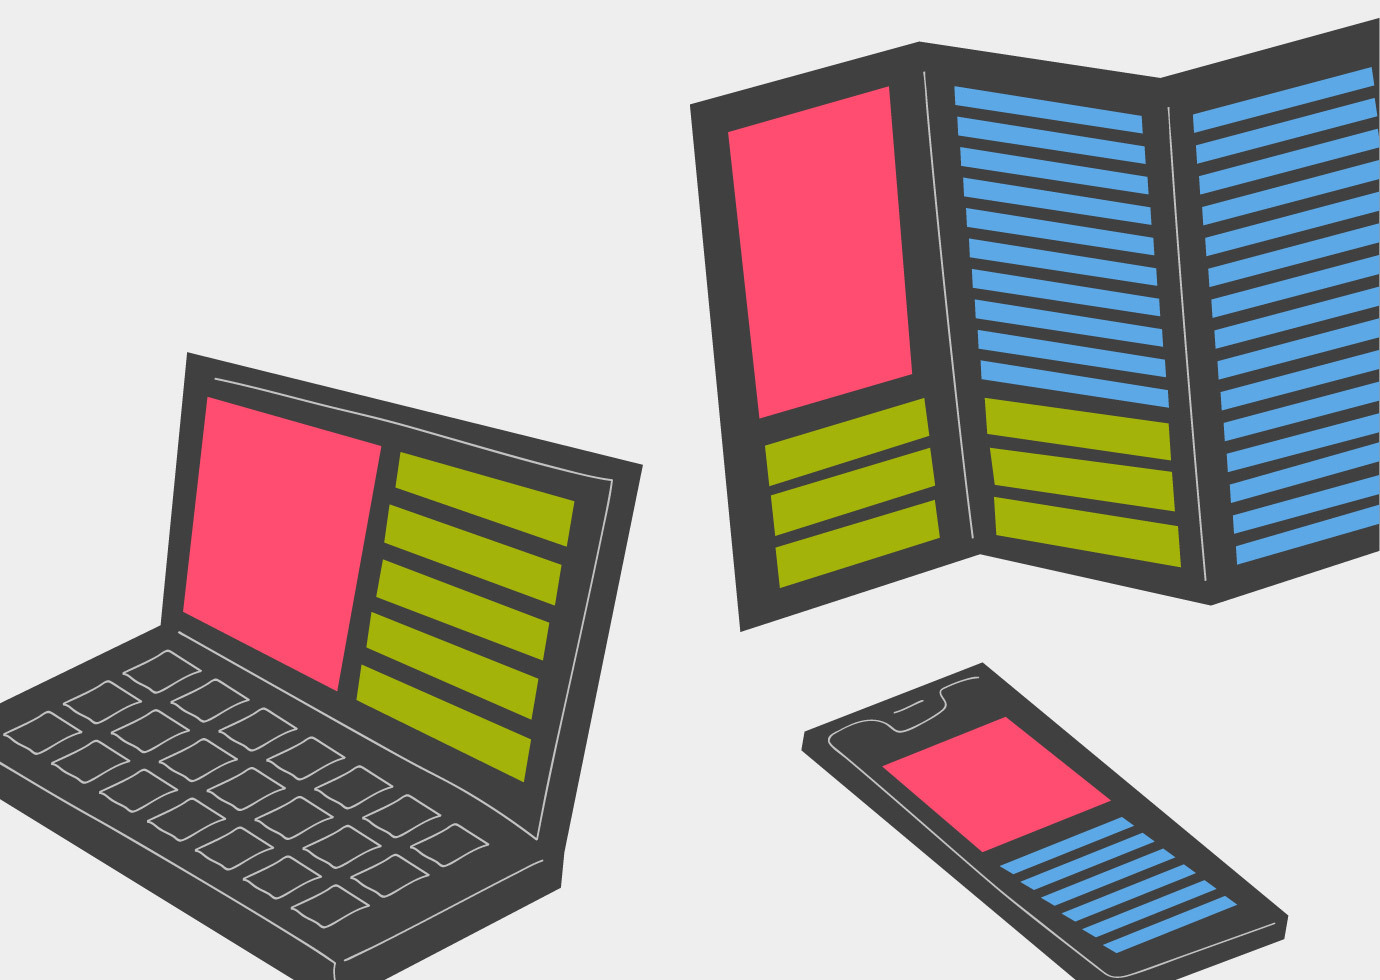 Laptop, brochure, and mobile device each display the same structured content.